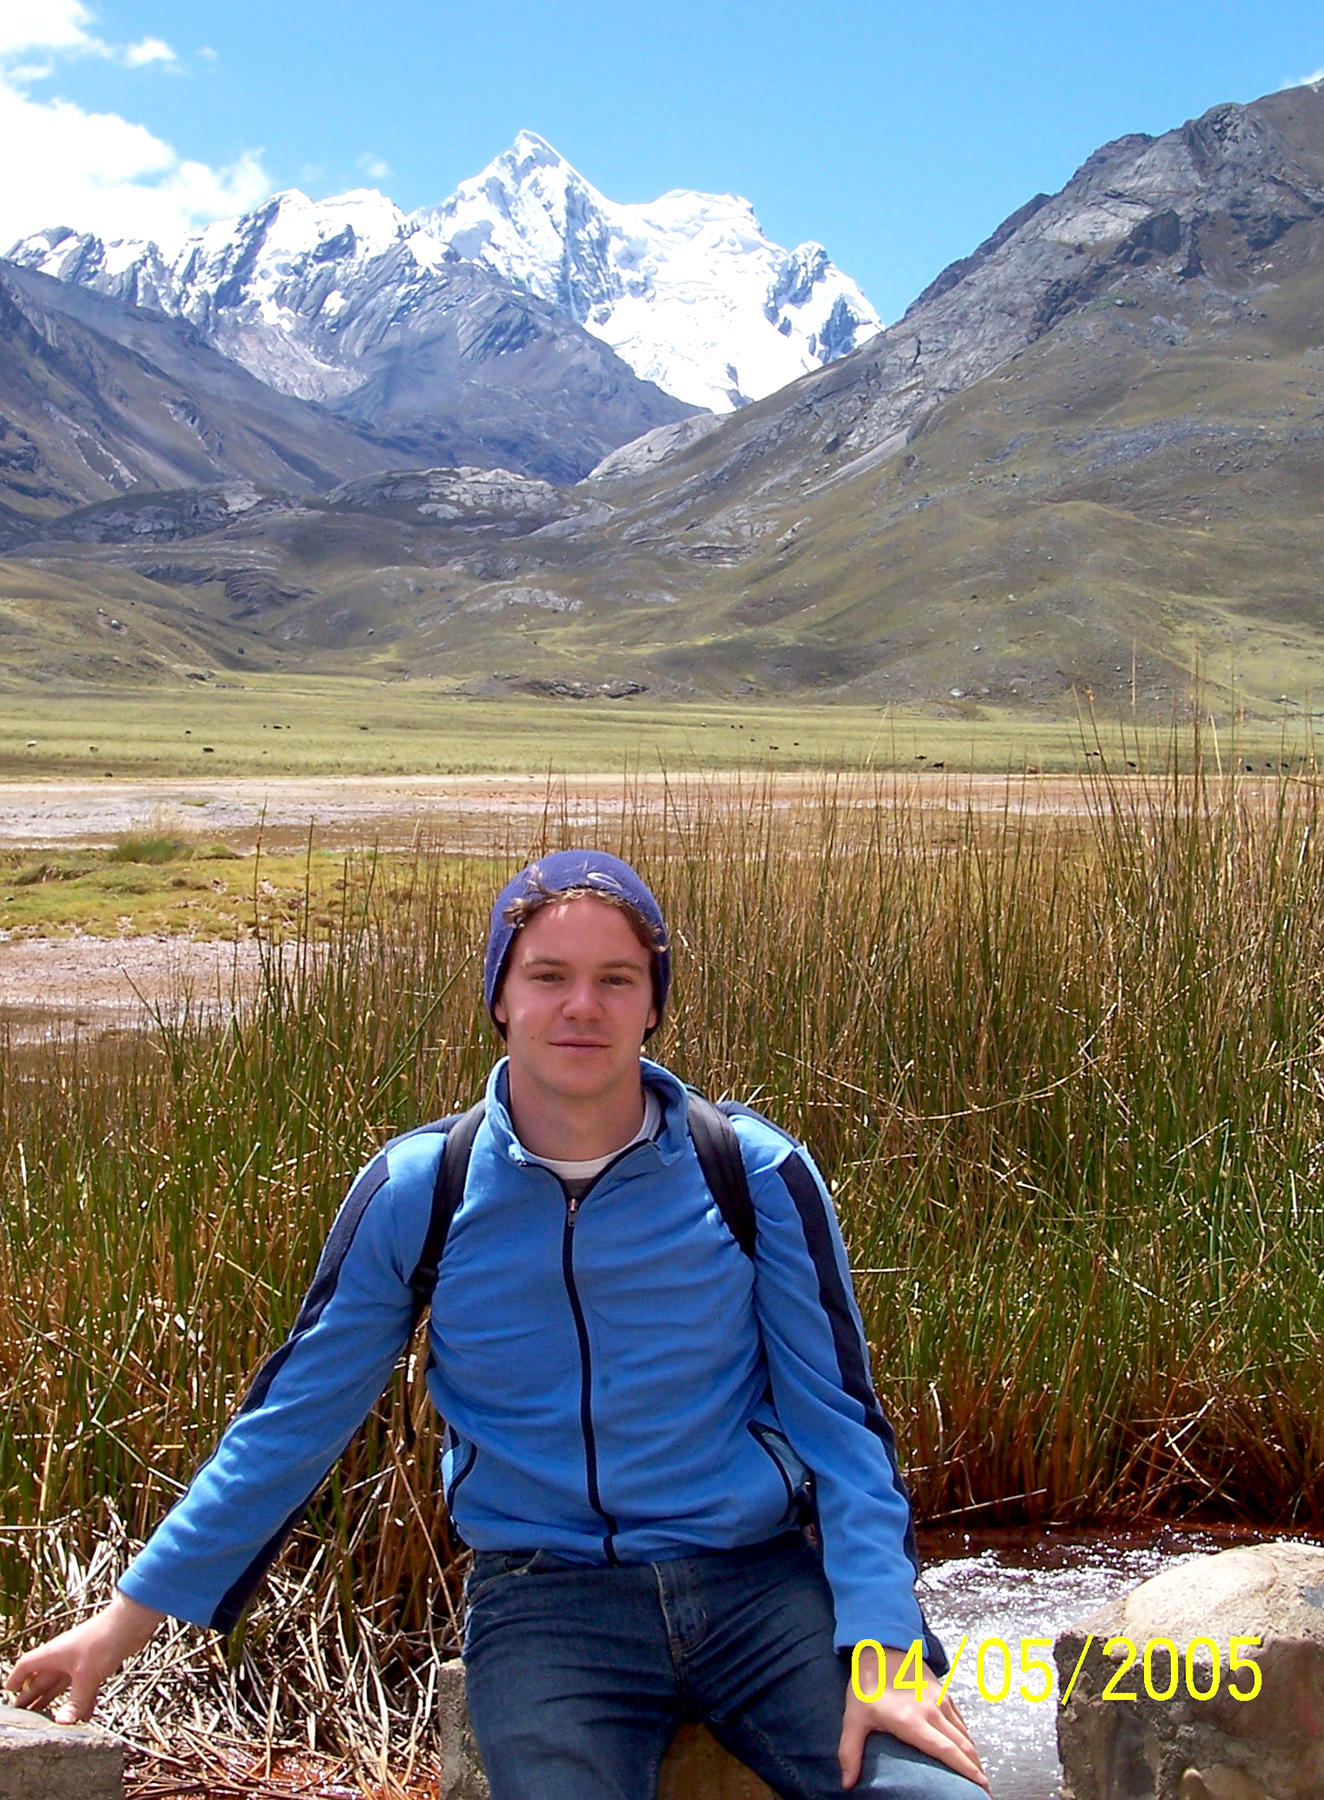 Dan Eley Travelling in Peruvian Andes